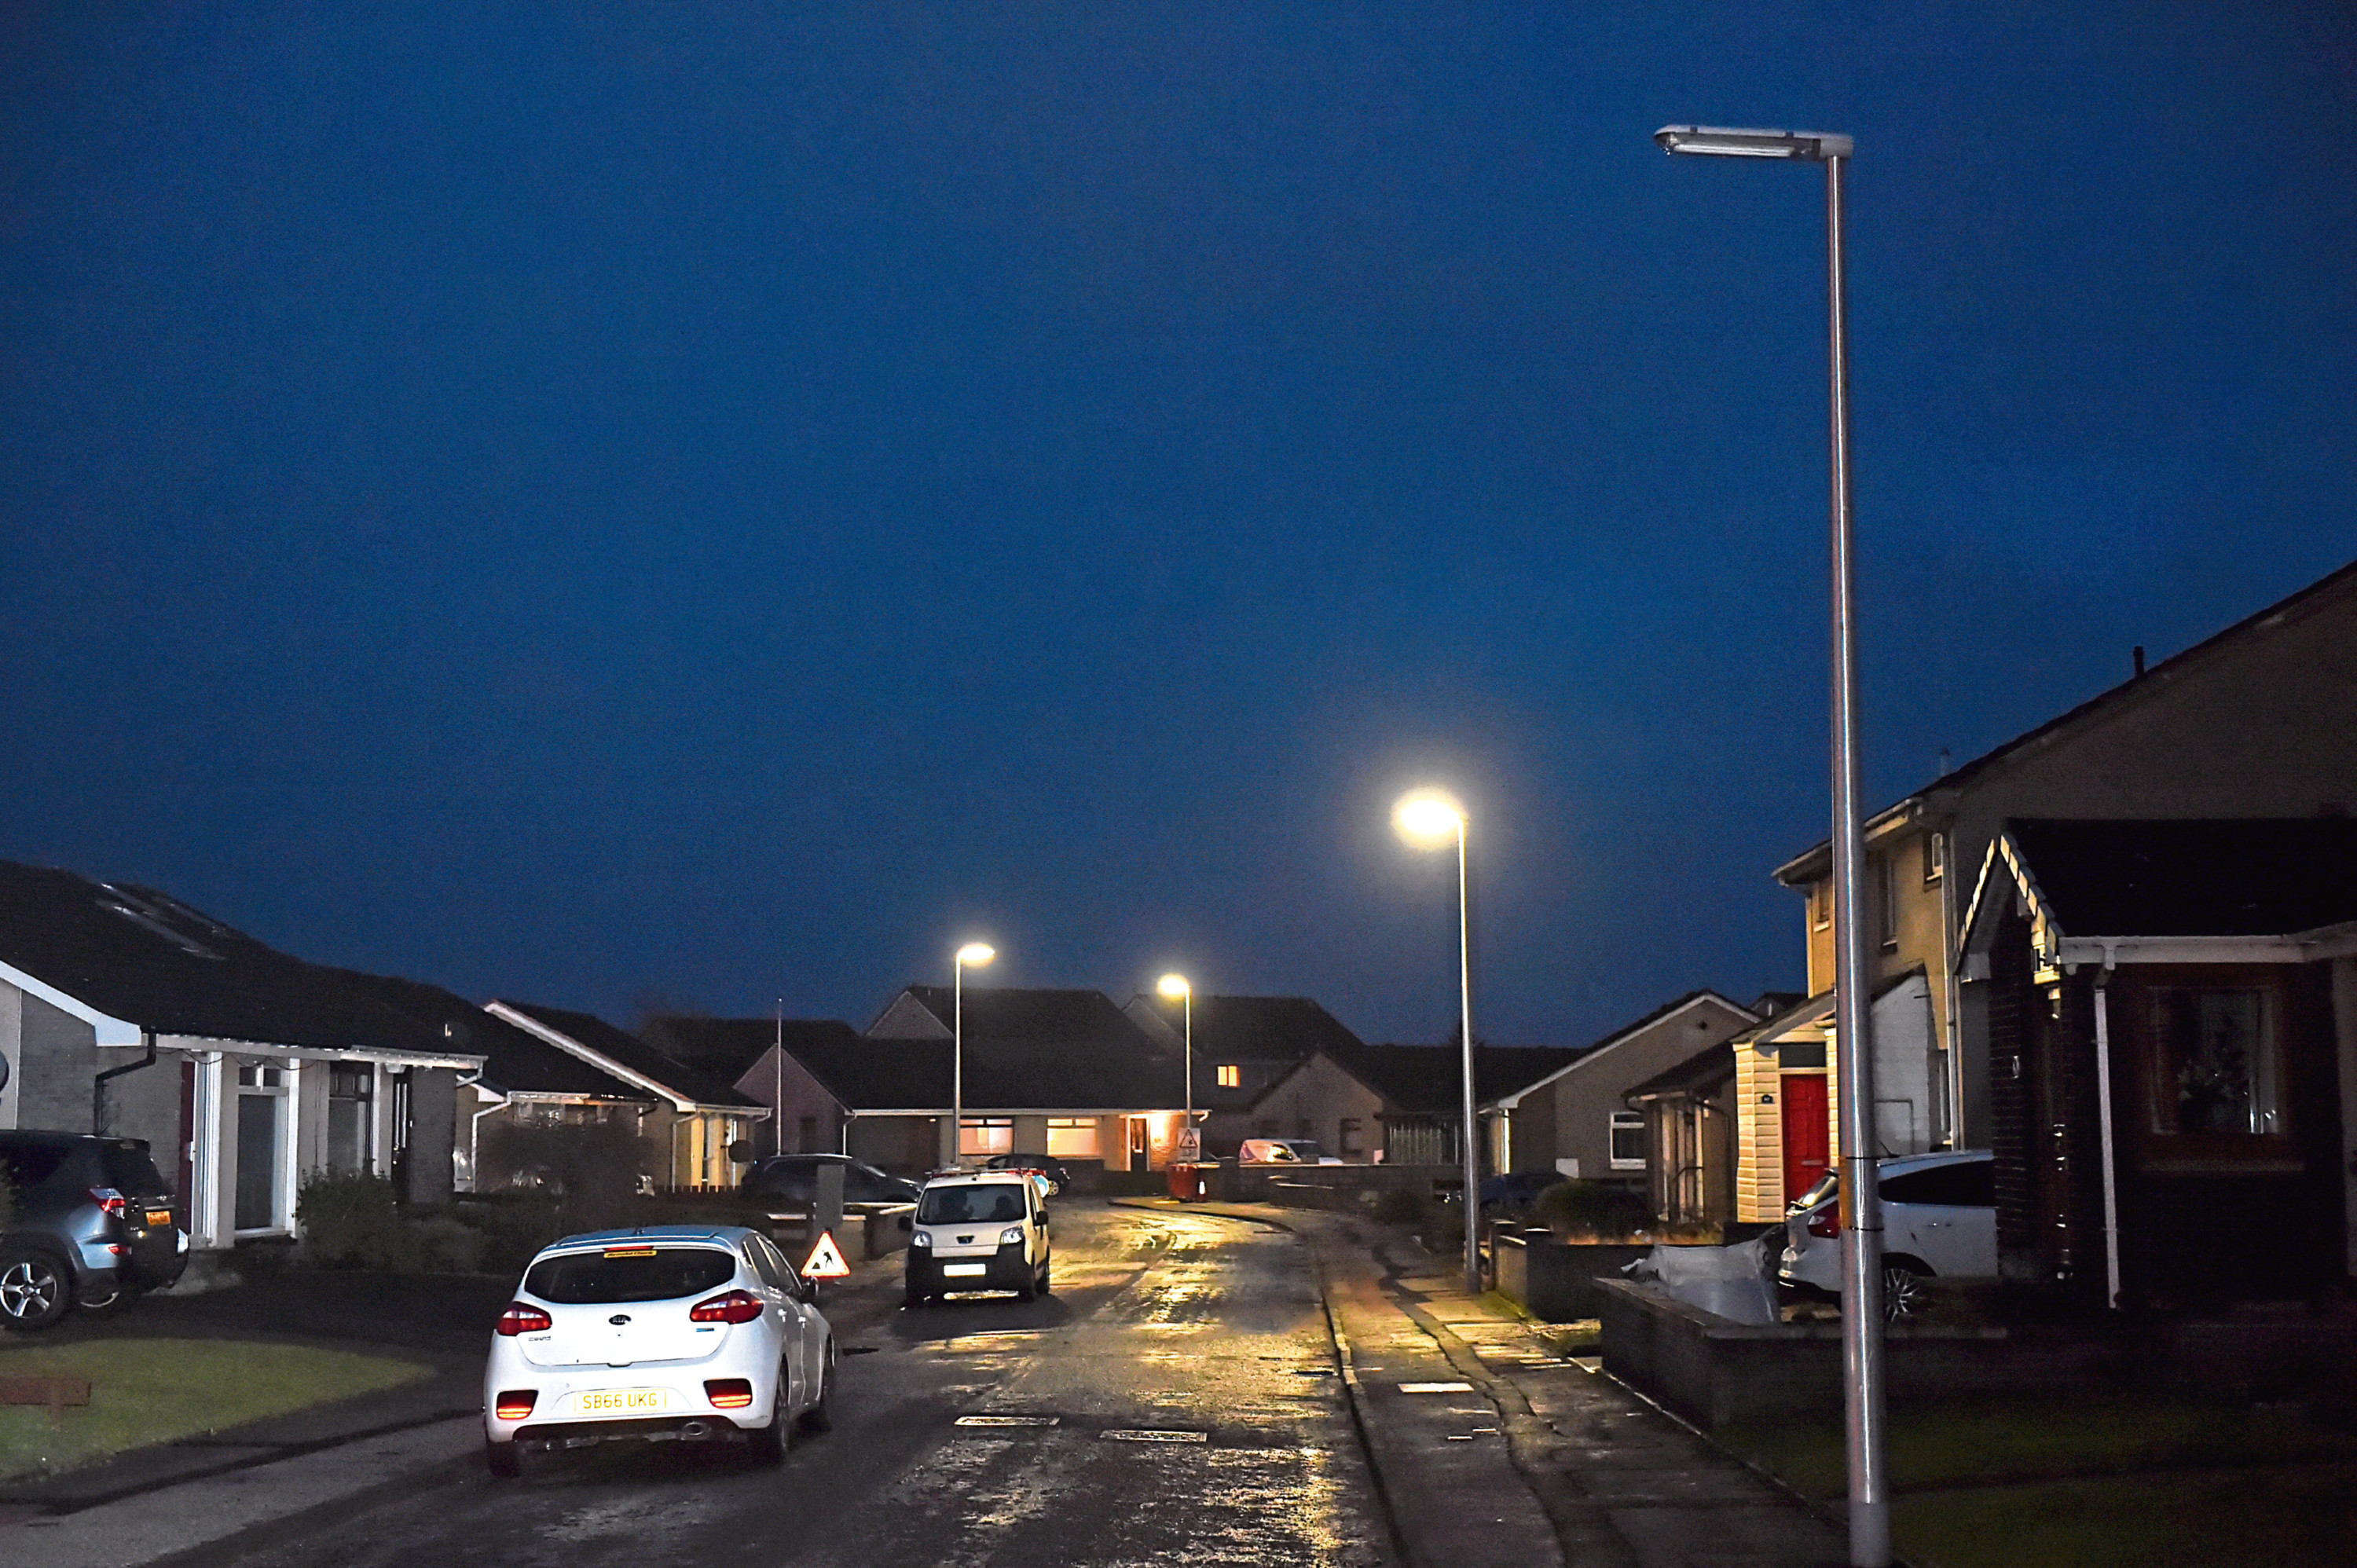 Repairing street lights need to be a priority says Councillor Martin Greig